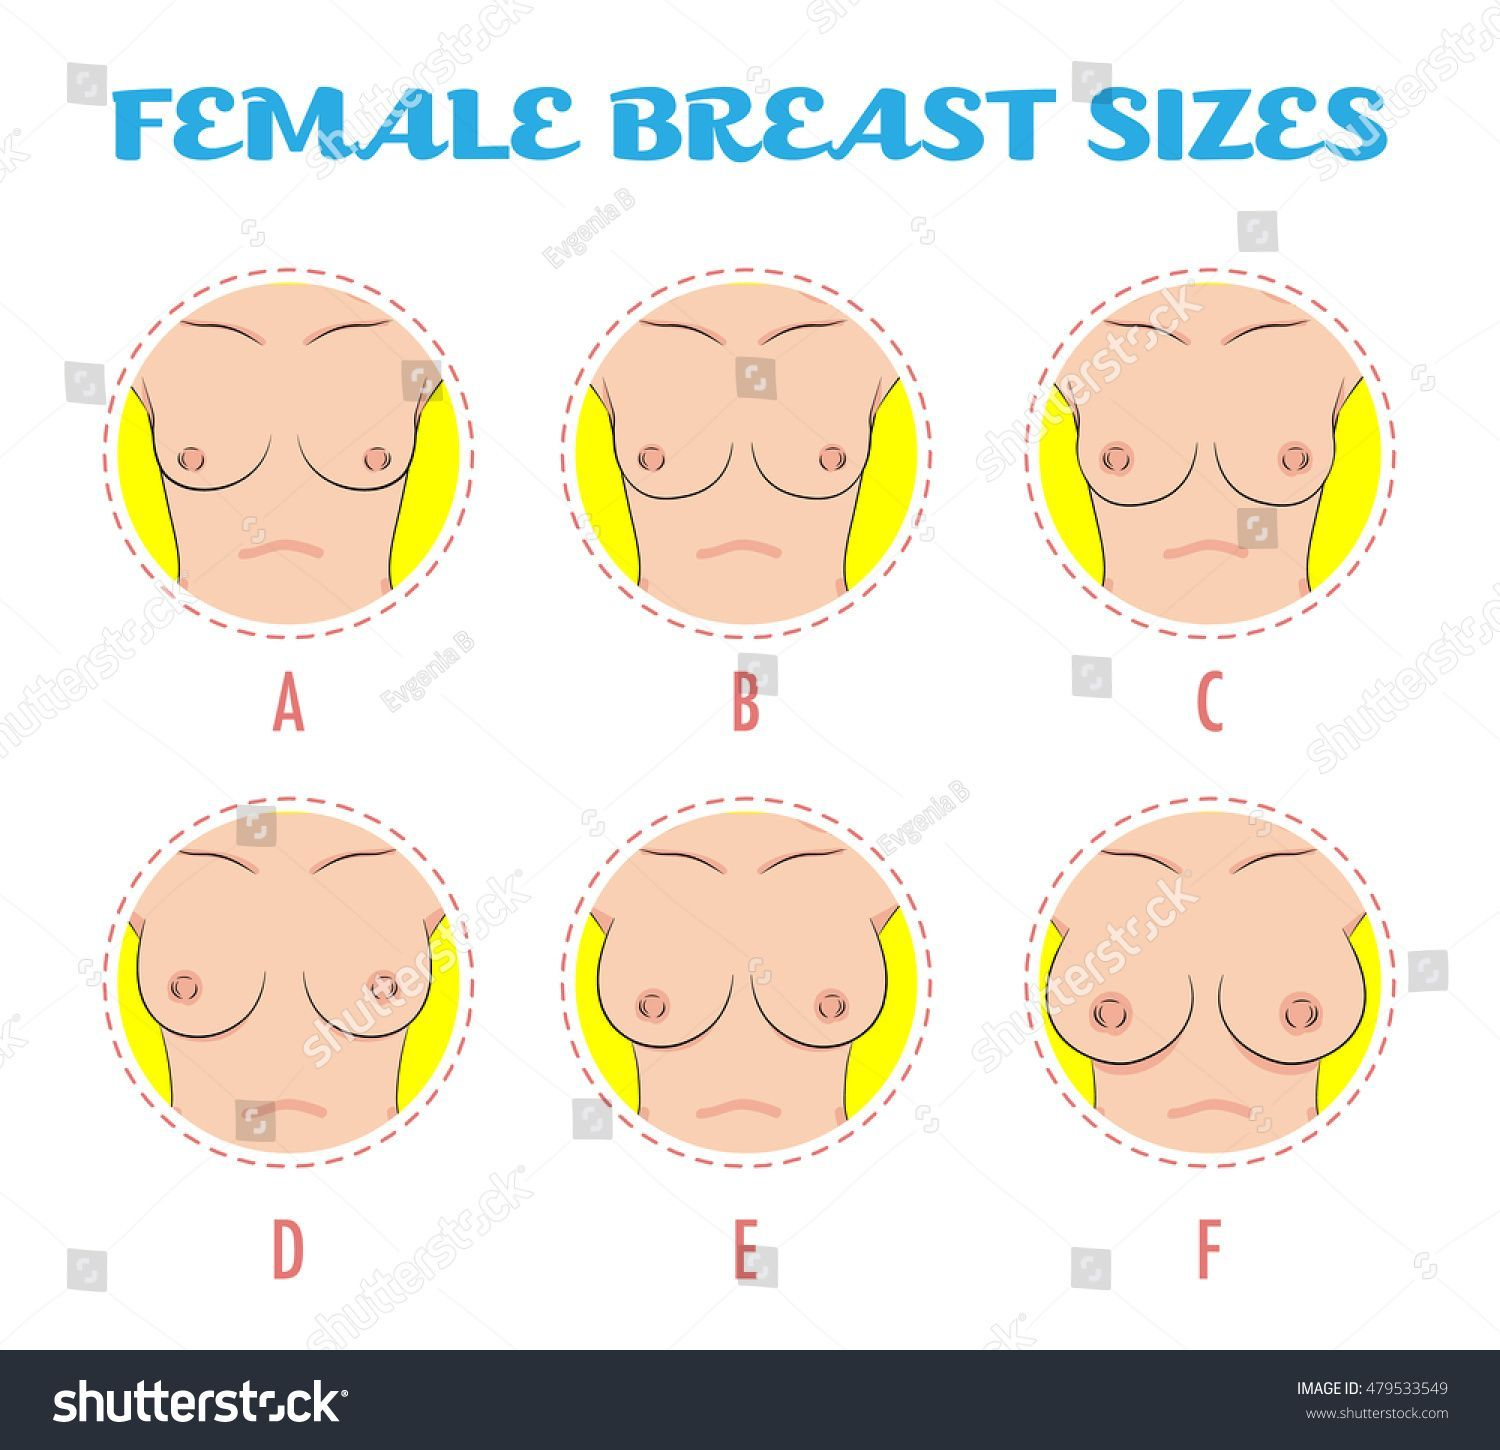 Boob sizes with pictures